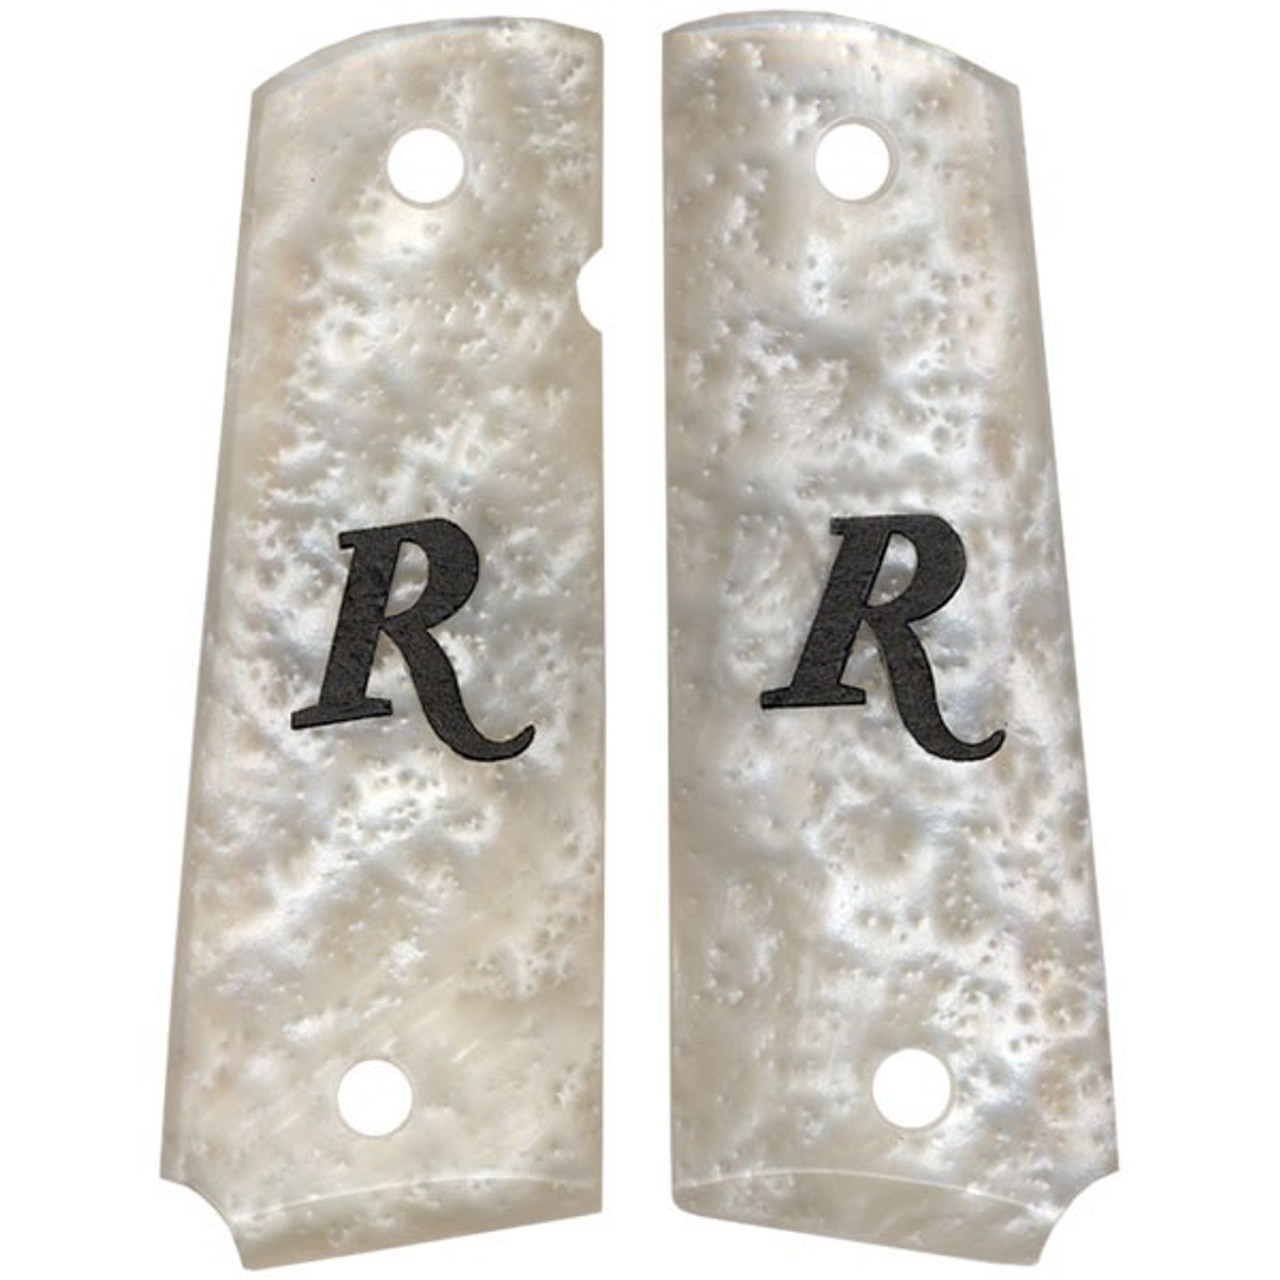 1911 GRIPS - GOVERNMENT / FULL-SIZE - REMINGTON - FAUX PEARL